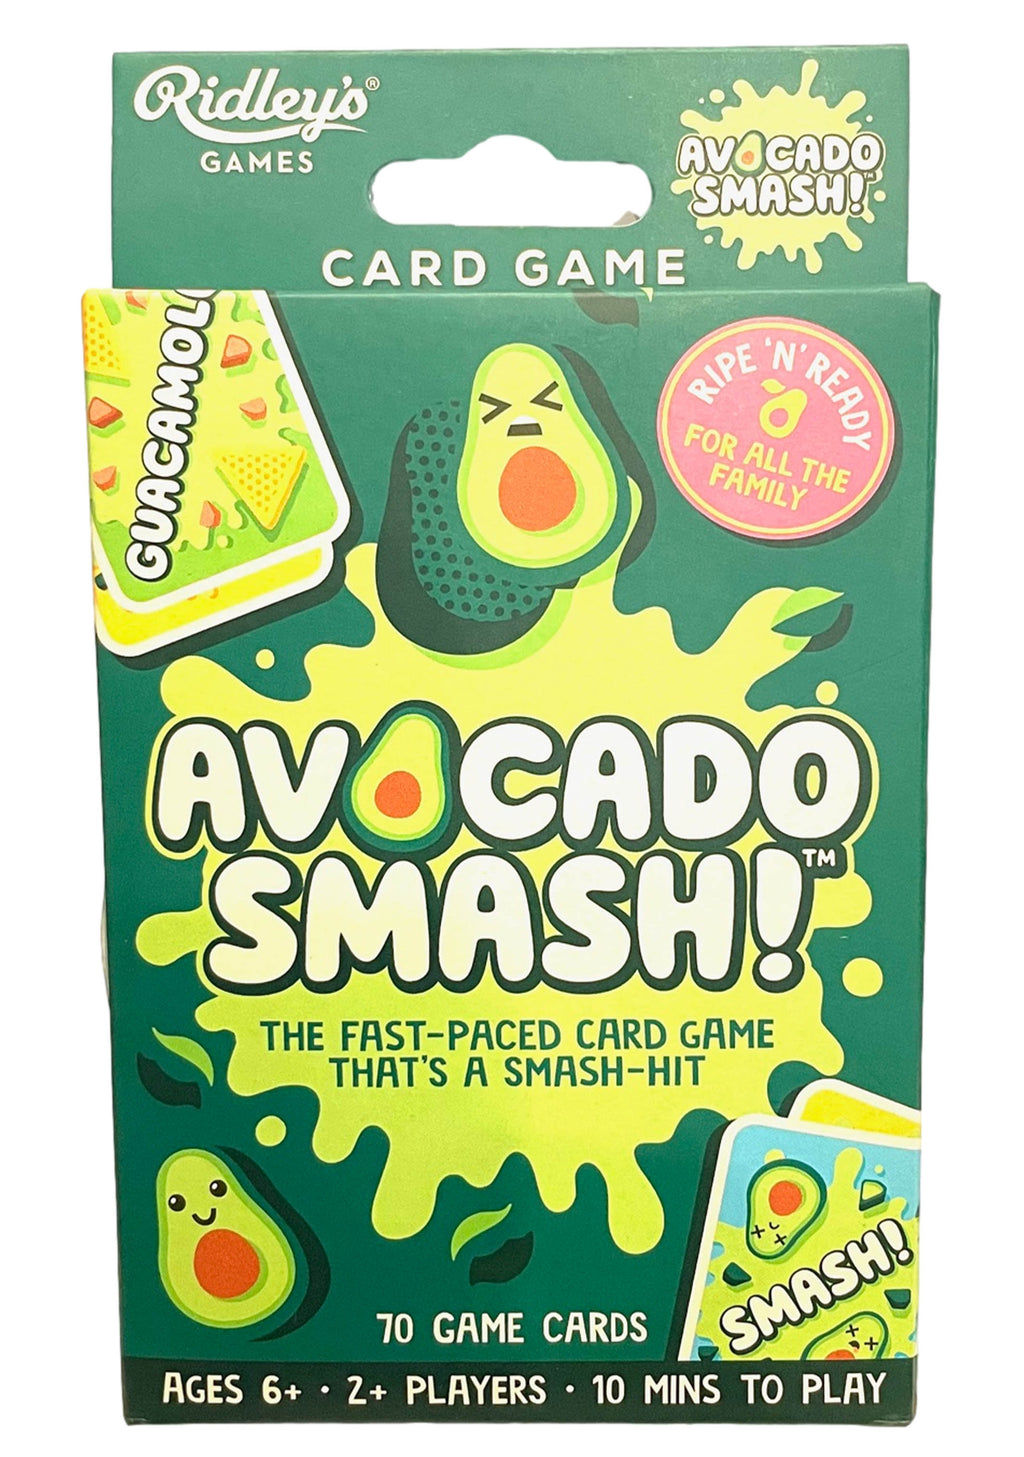 RIDLEYS AVOCADO SMASH CARDS